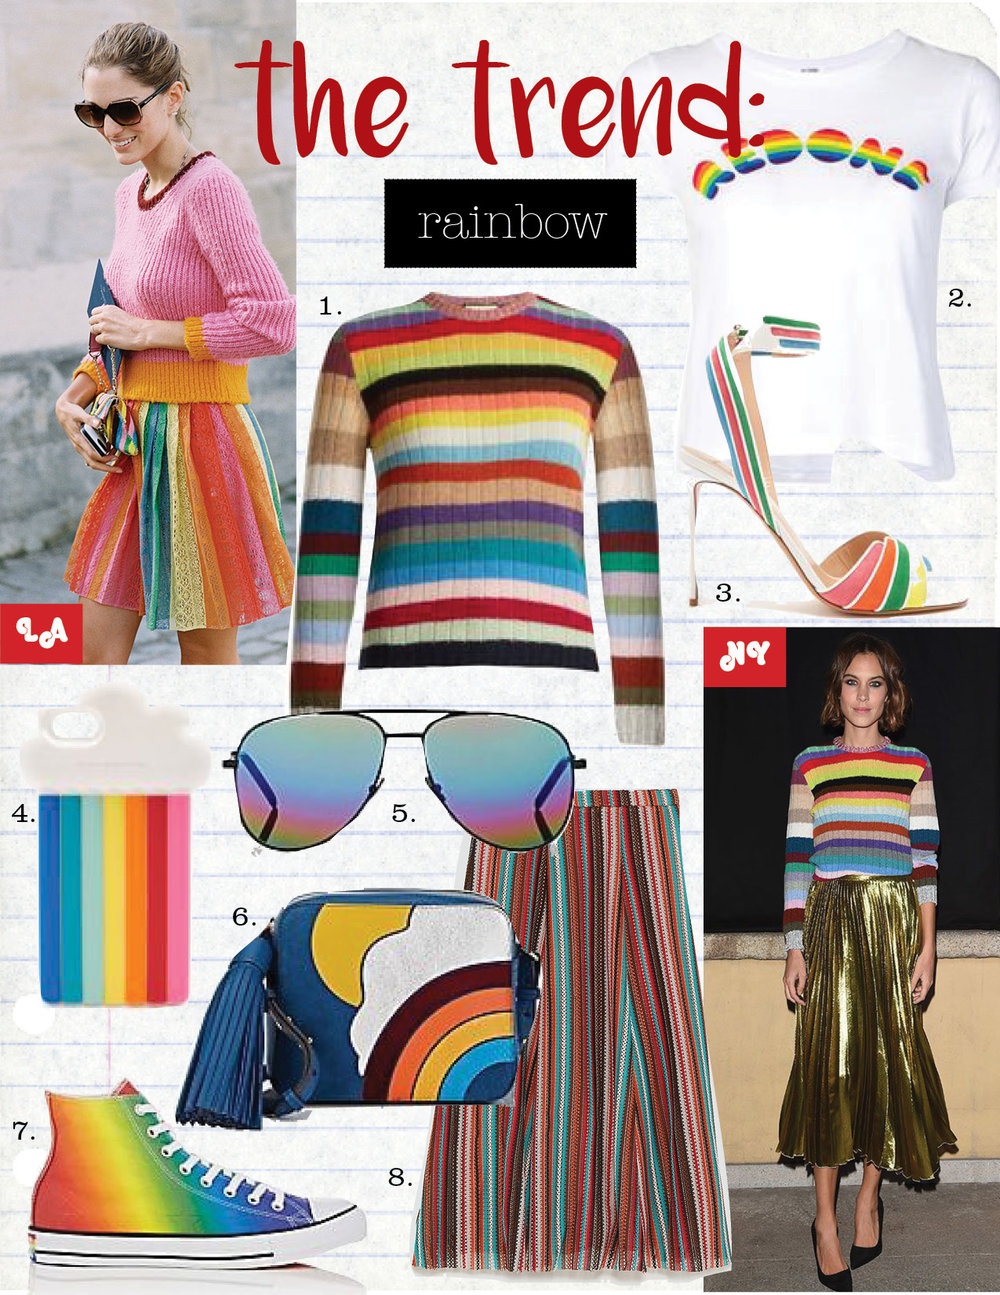 1. gucci long-sleeved striped cashmere-blend sweater, $1200,  matchesfashion.com  2. re/done rainbow logo t-shirt, $154,  farfetch.com  3. valentino striped leather and suede sandals, $1045,  matchesfashion.com  4. stella mccartney rainbow iphone 7 case, $85,  matchesfashion.com  5. saint laurent classic 11 rainbow sunglasses, $380,  barneys.com  6. anya hindmarch appliqued crossbody bag, $1095,  barneys.com  7. converse chuck taylor all star canvas sneakers, $65,  barneys.com  8. zara skirt with multicolored stripes, $45,  zara.com